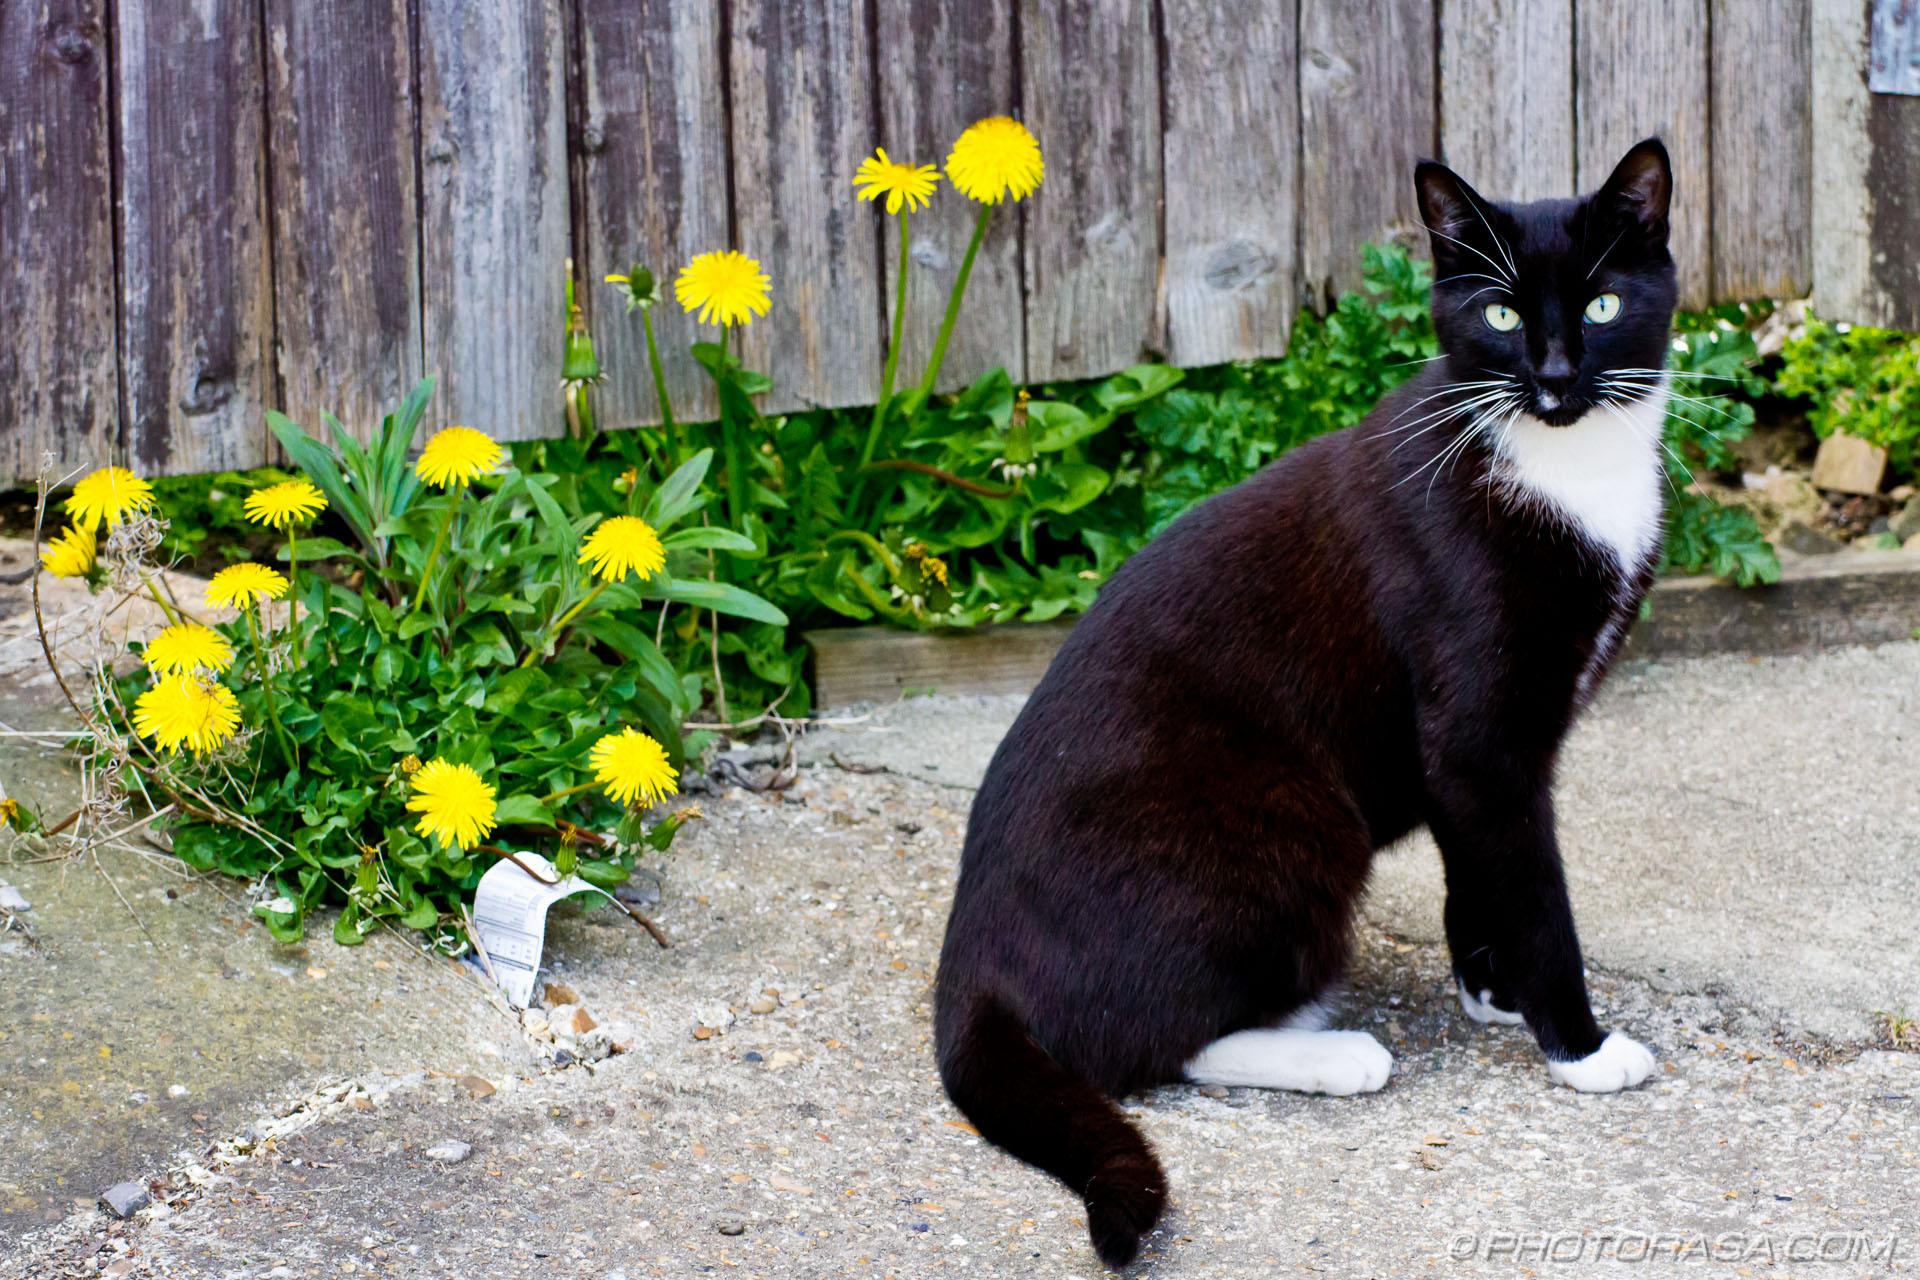 http://photorasa.com/black-white-cats/cat-and-dandelions/